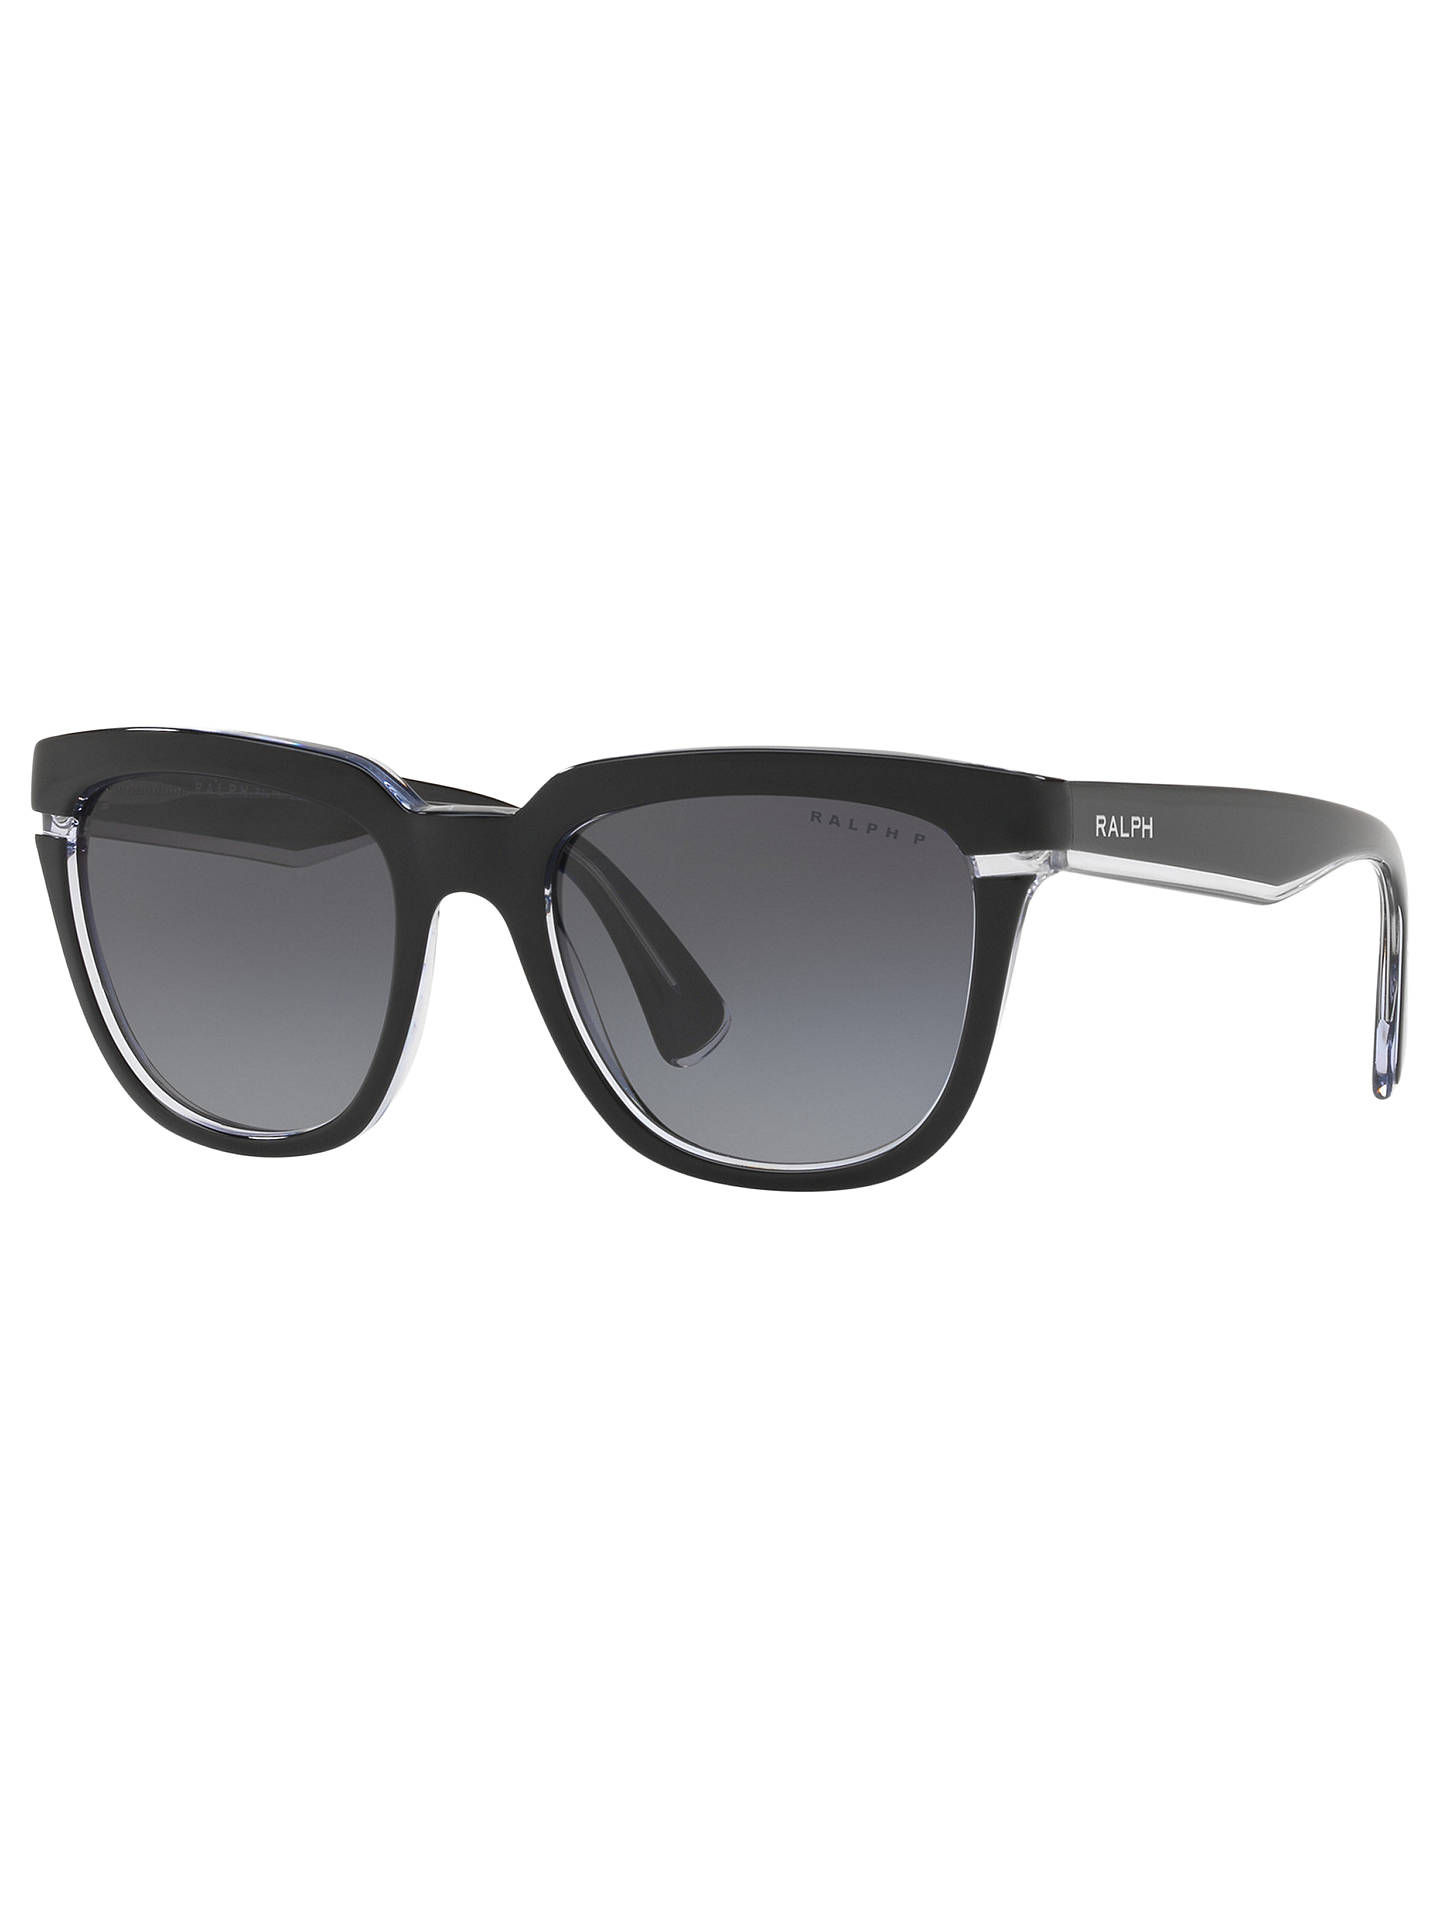 BuyRalph RA5237 Women's Polarised Square Sunglasses, Black/Grey Gradient Online at johnlewis.com